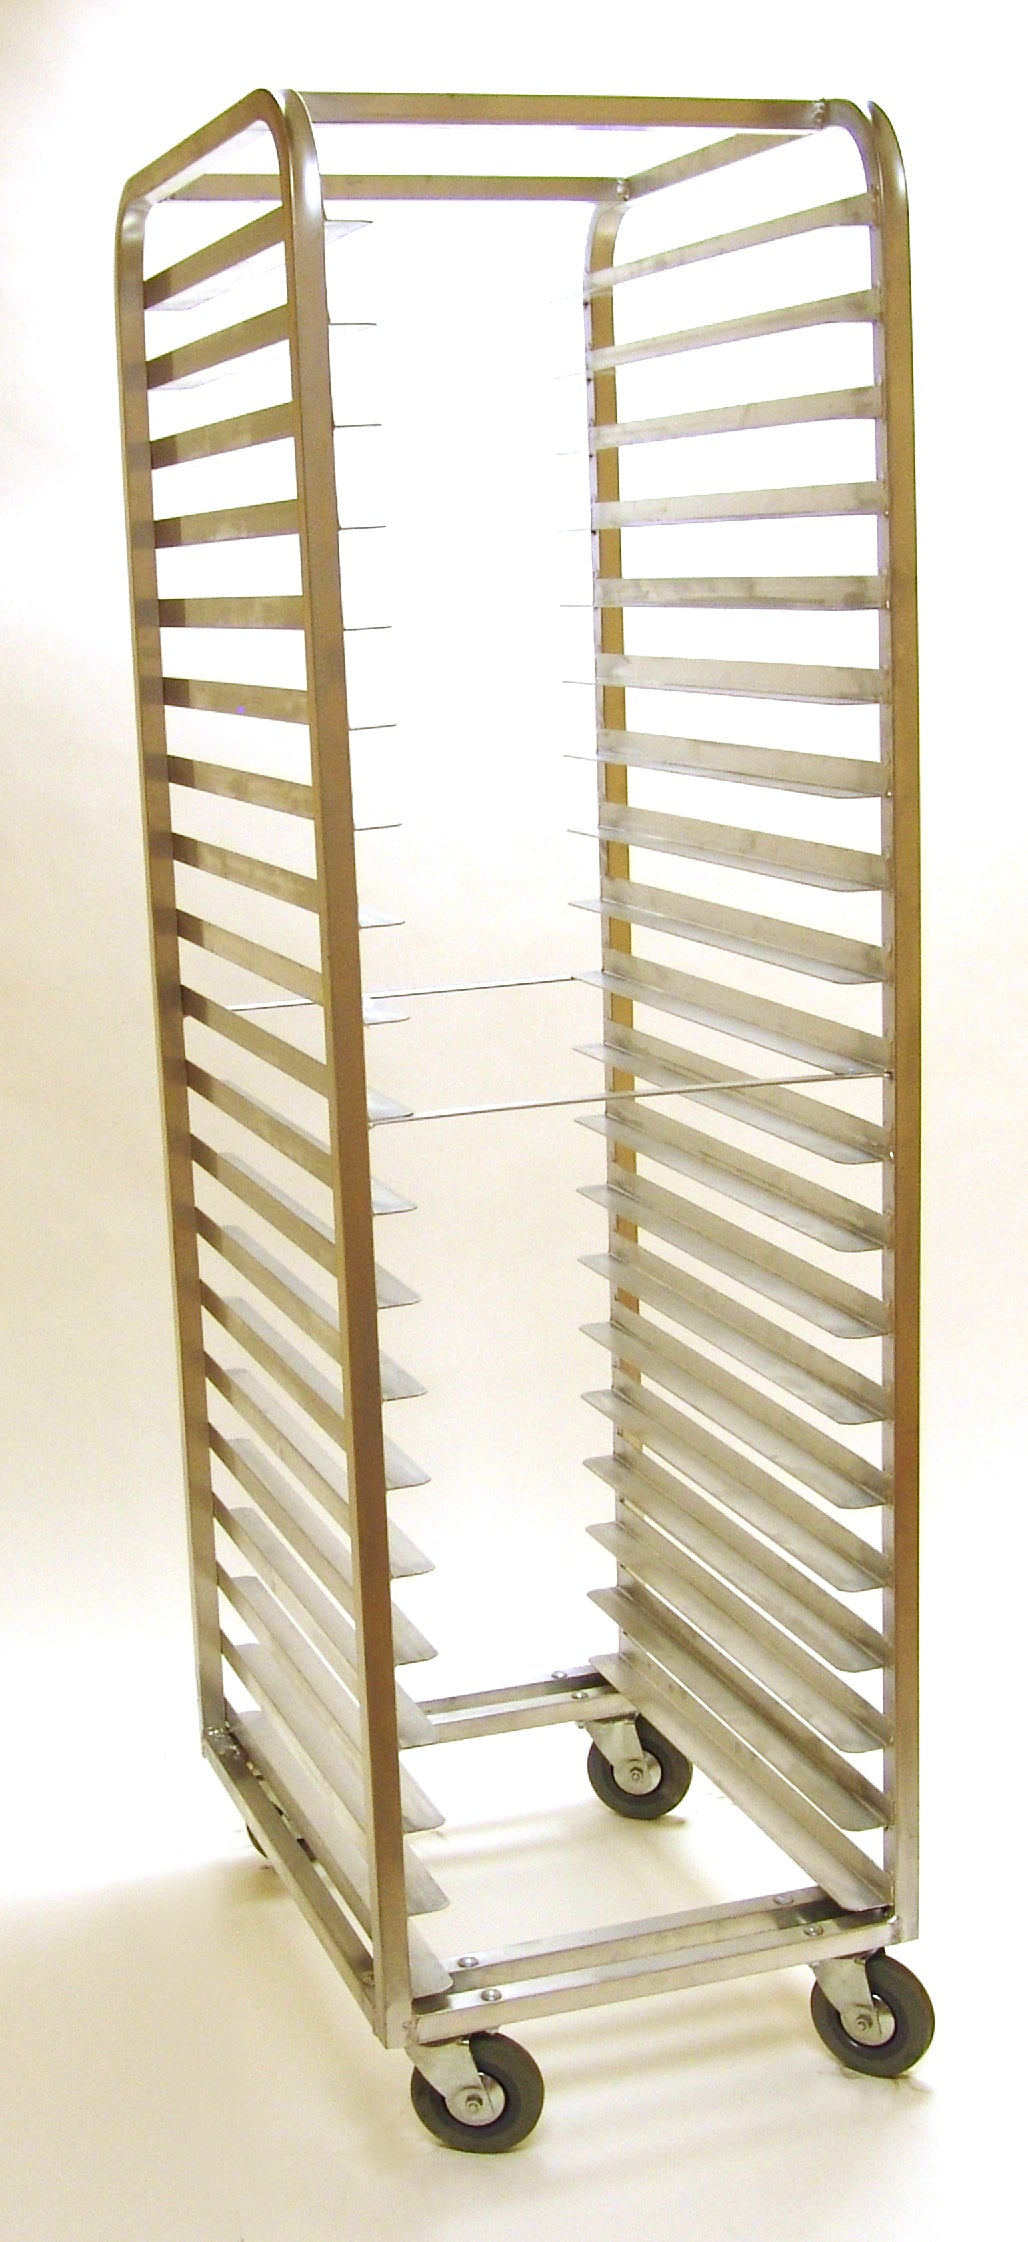 SINGLE WELDED RACKS - CROWN COOKWARE CA WEB STORE